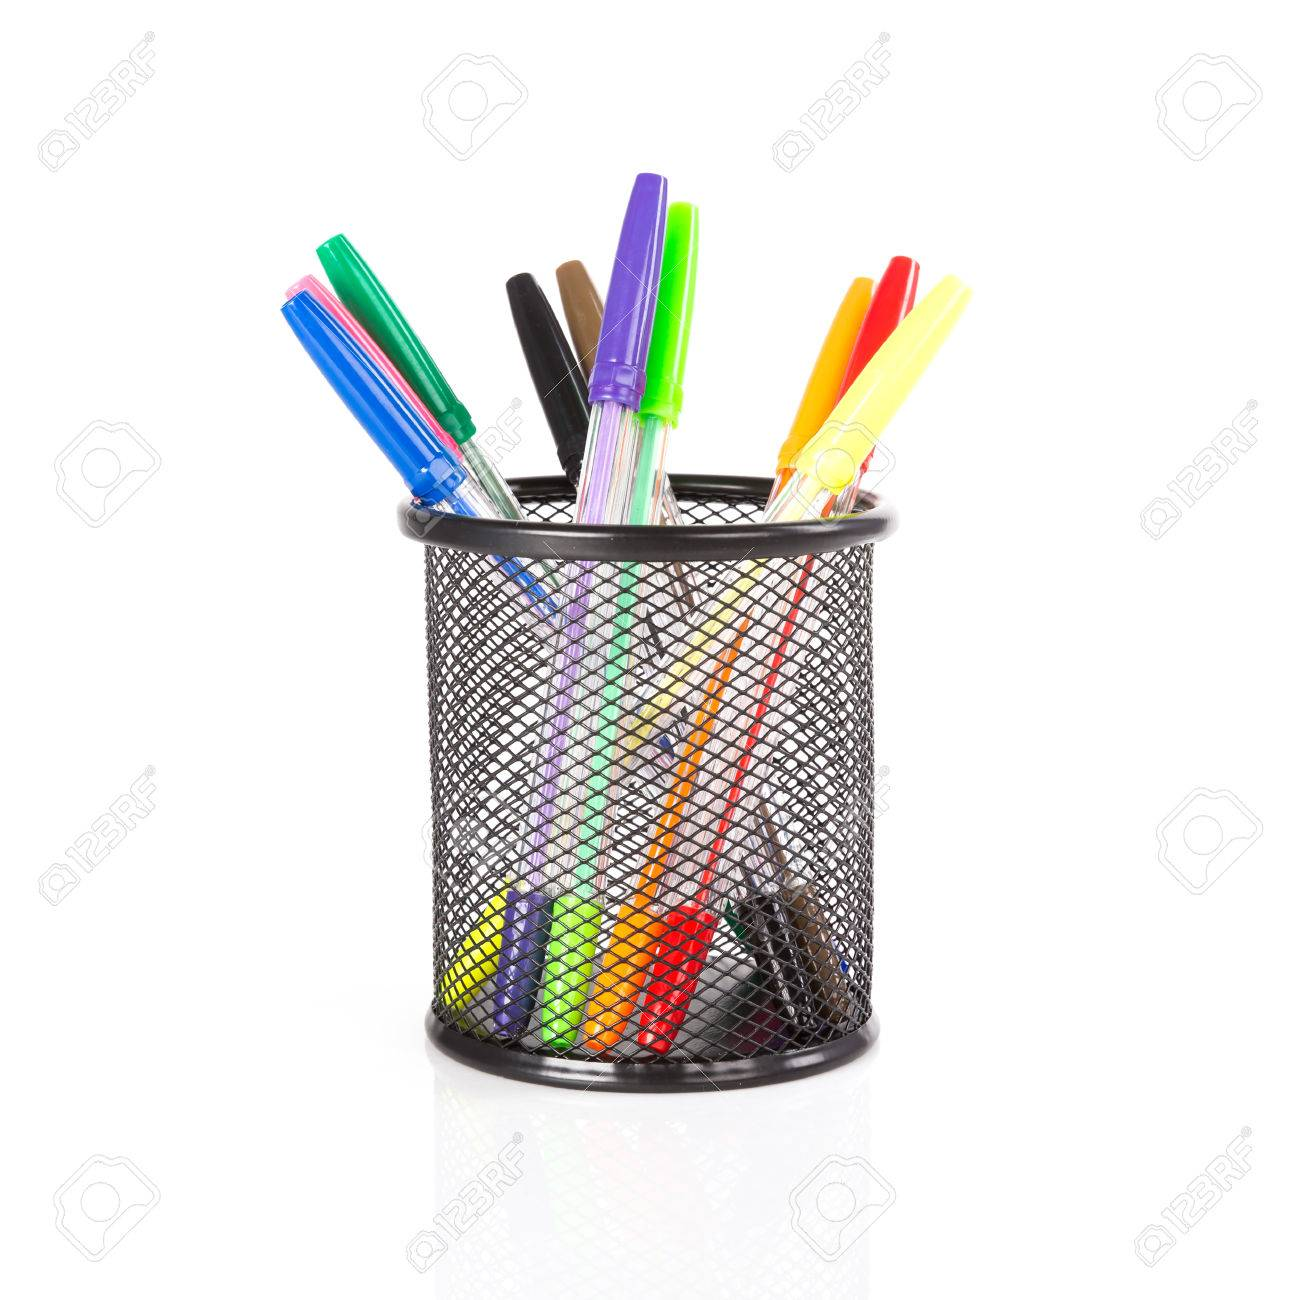 Colorful pencils in a black basket over a white background - 25275800